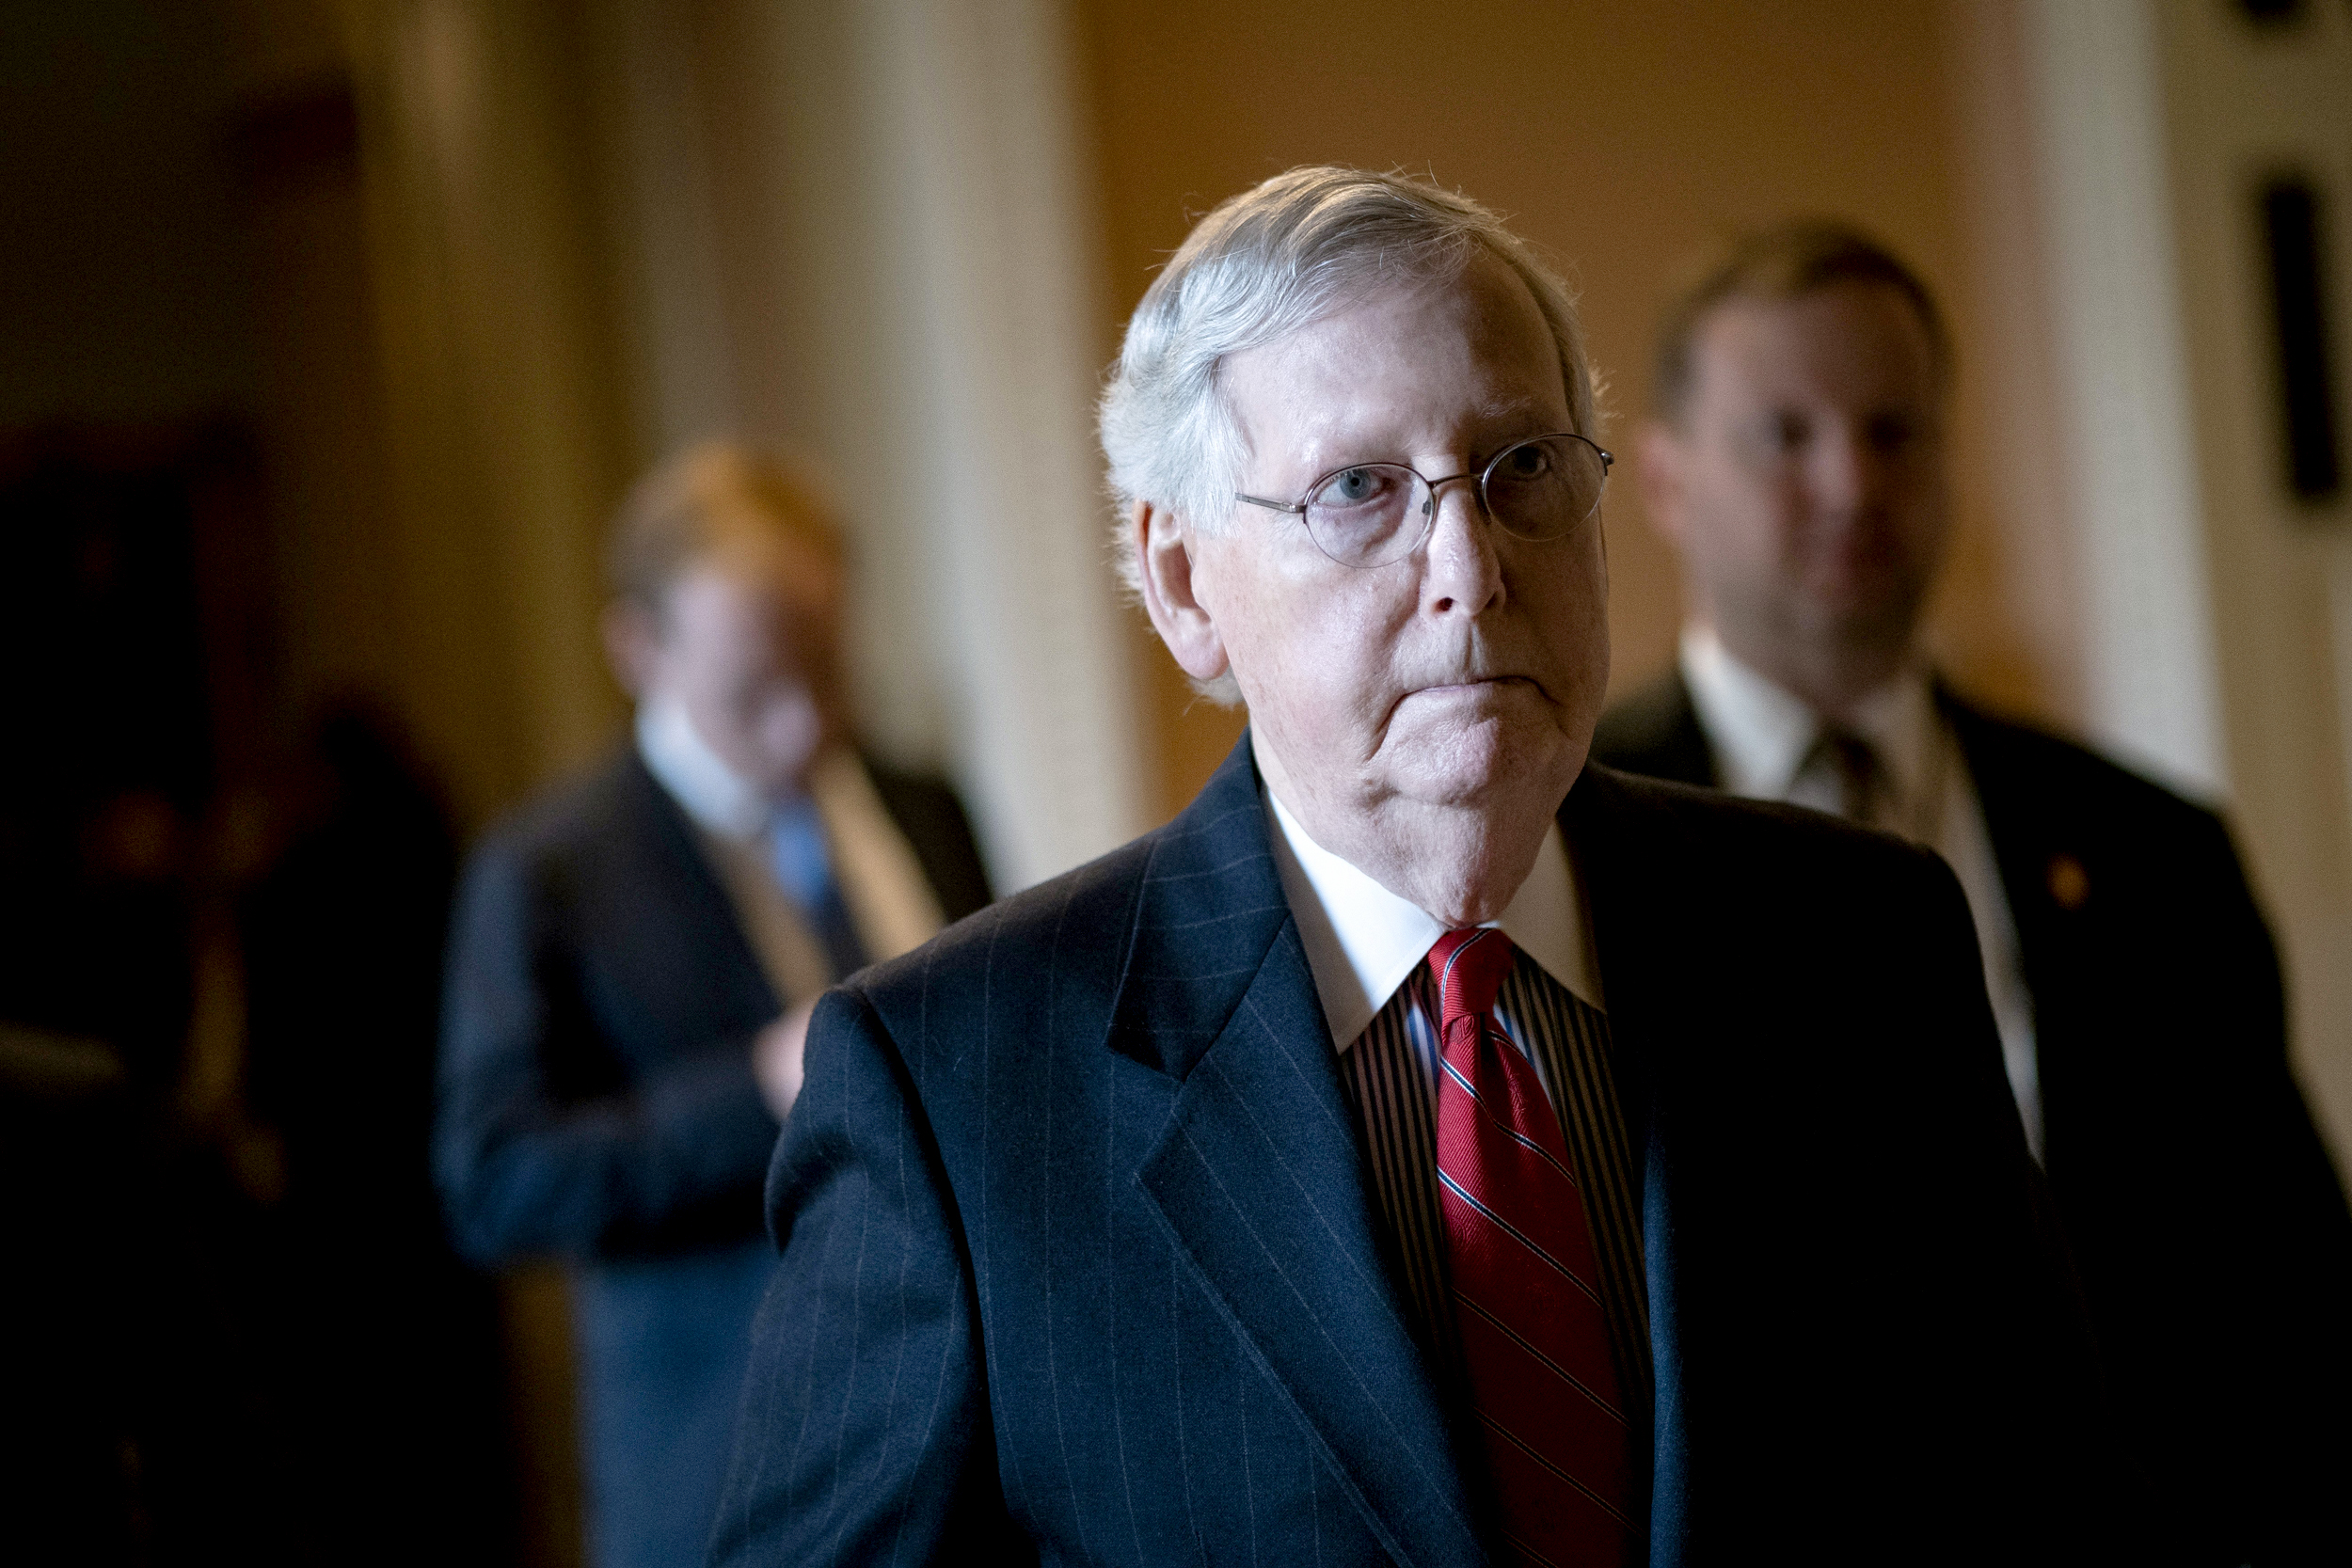 Where Did Mitch Mcconnell Go For Christmas Vacation 2020 McConnell suggests House impeachment timing could push Senate